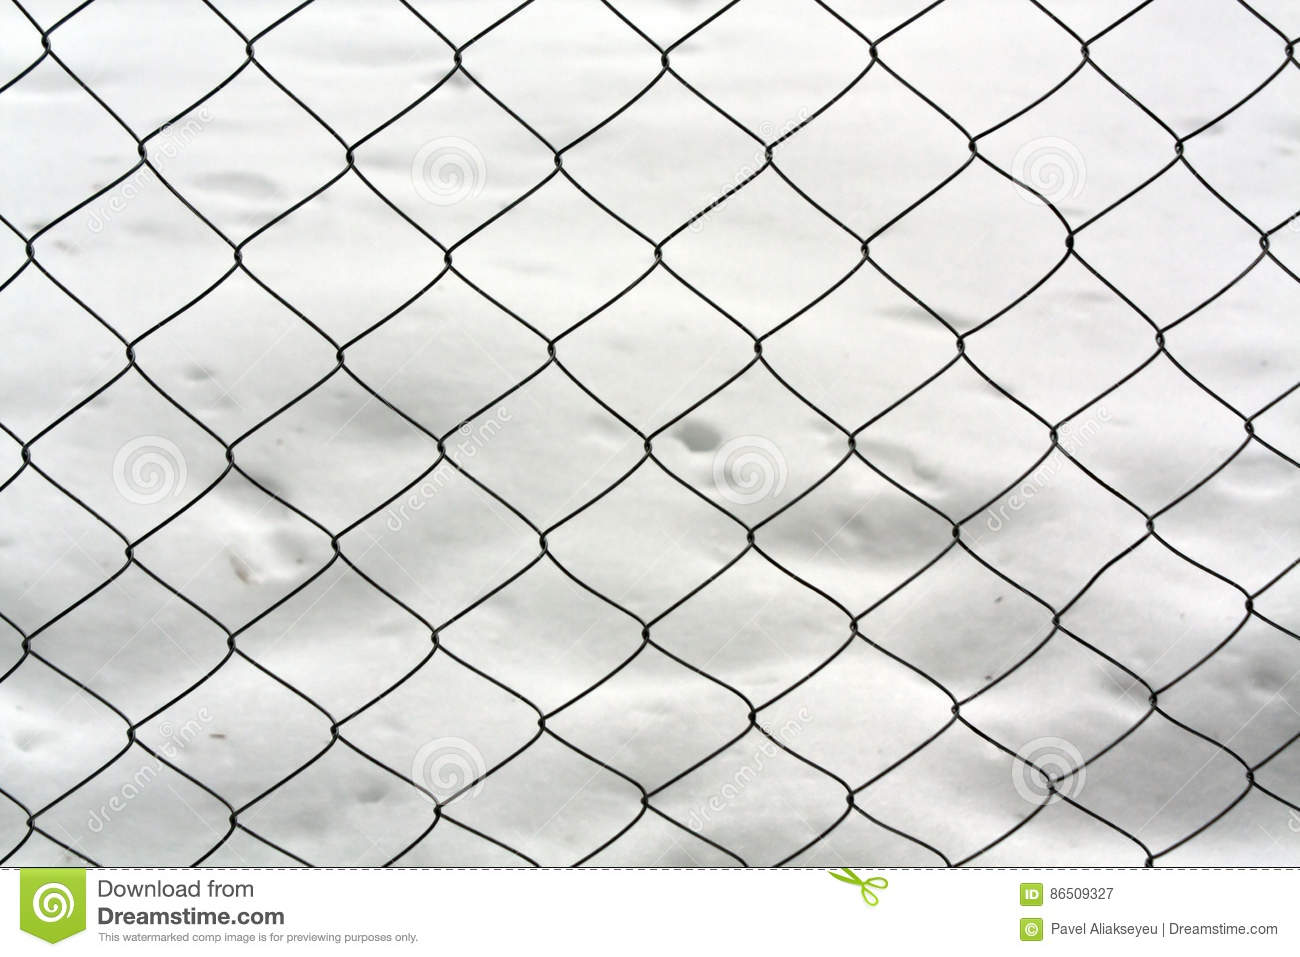 Metal Mesh Wire Fence Against Snow Pile. Stock Image - Image: 86509327